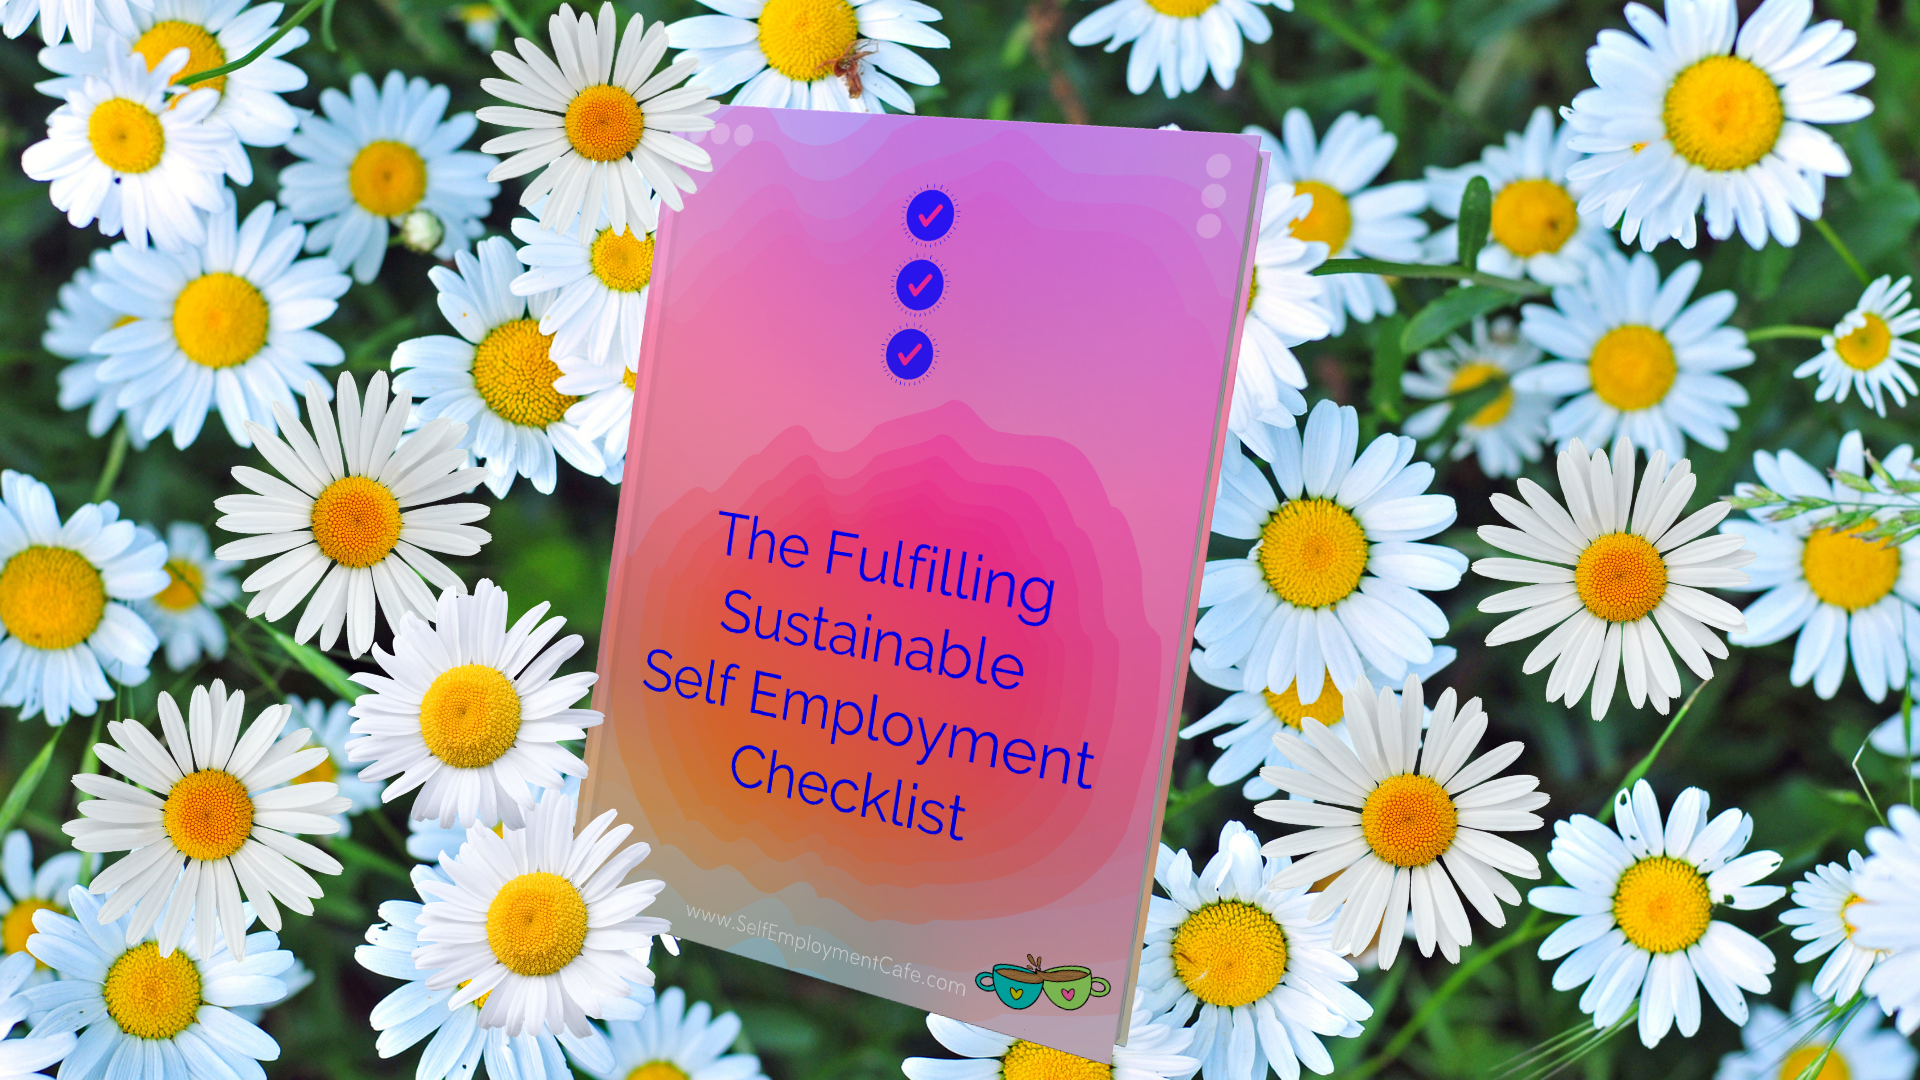 Sustainable and Fulfilling Self Employment Checklist